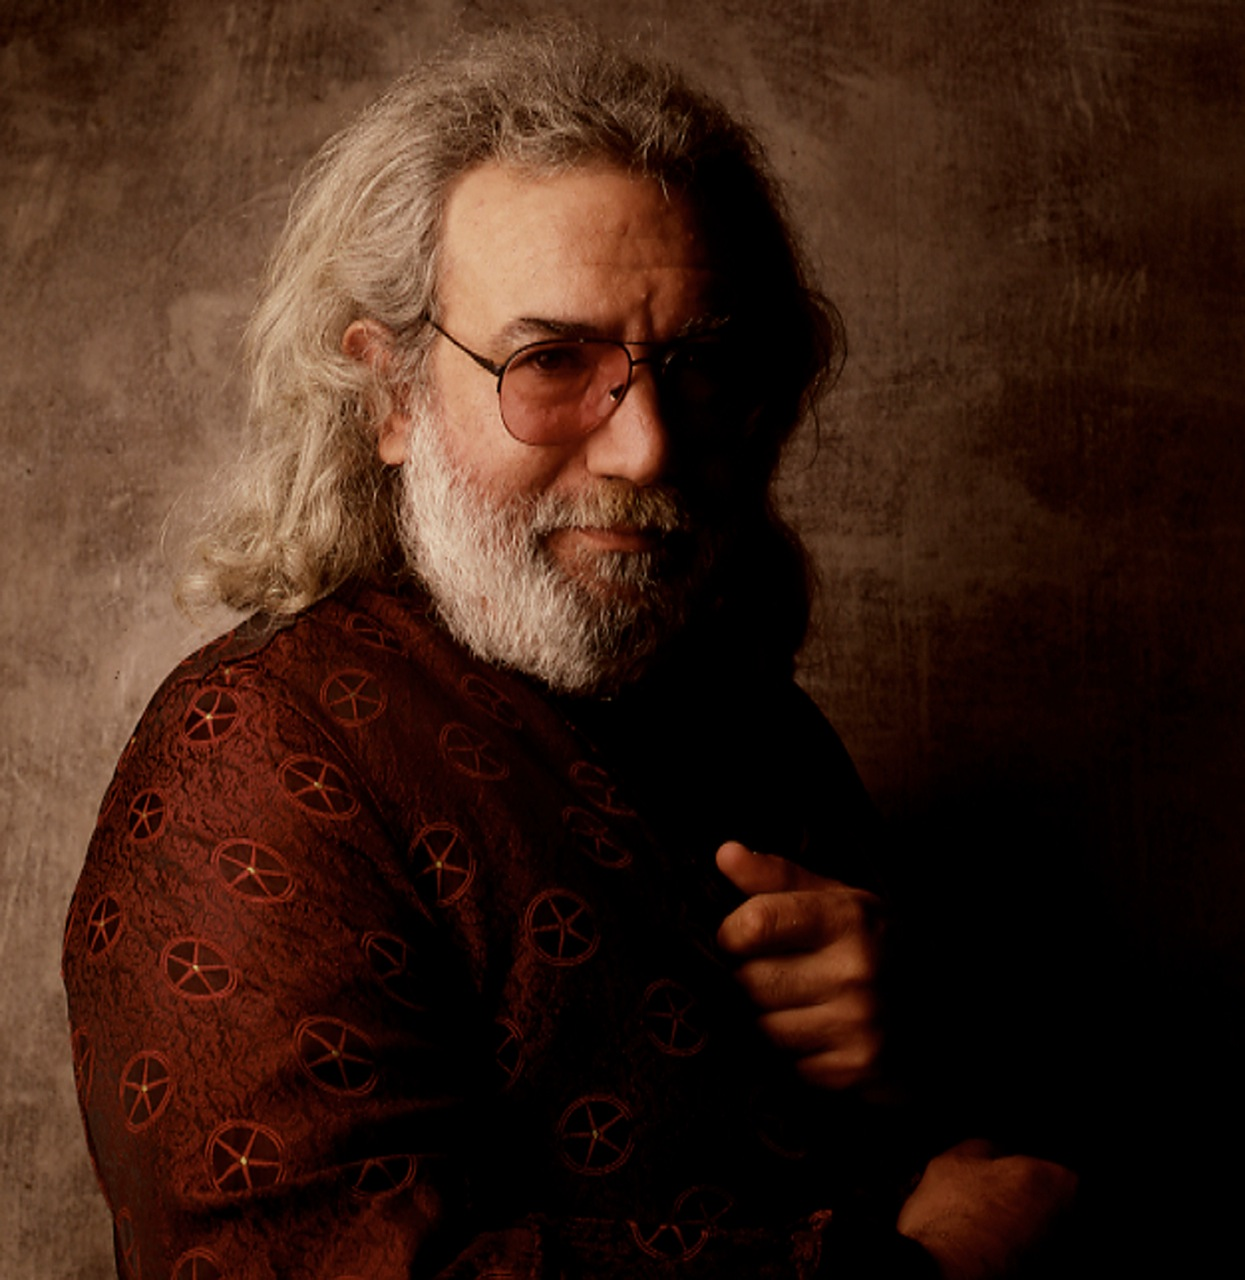 jerry garcia - photo #28